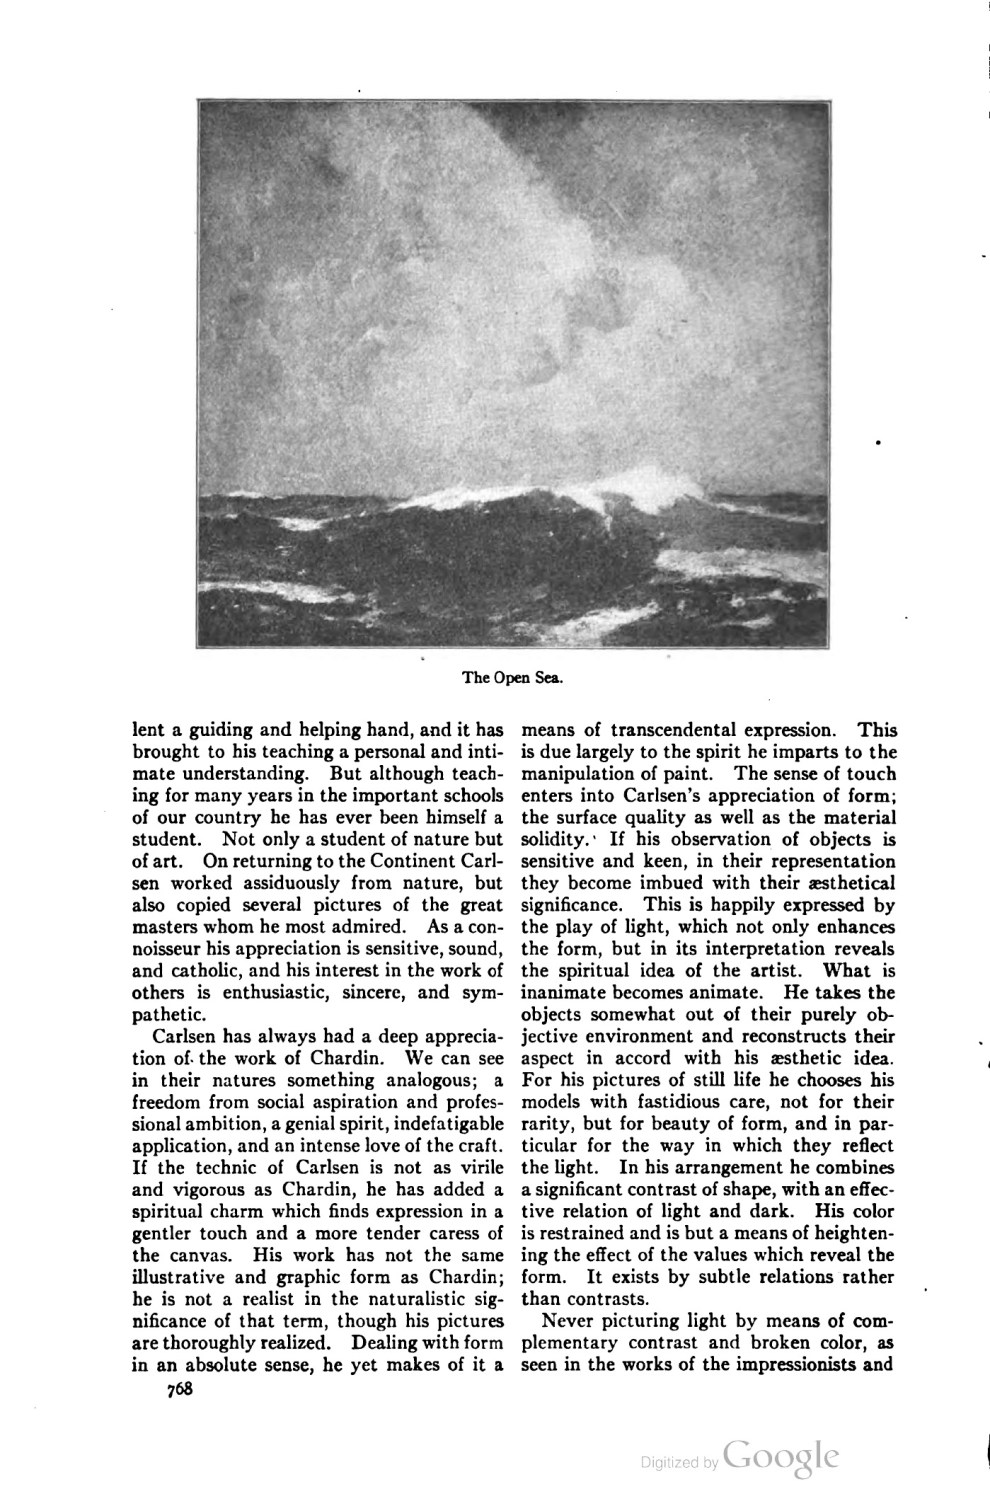 """Scribner's Magazine, New York, NY, """"The Field of Art: Emil Carlsen"""" by Eliot Clark, December, 1919, page 767-770"""